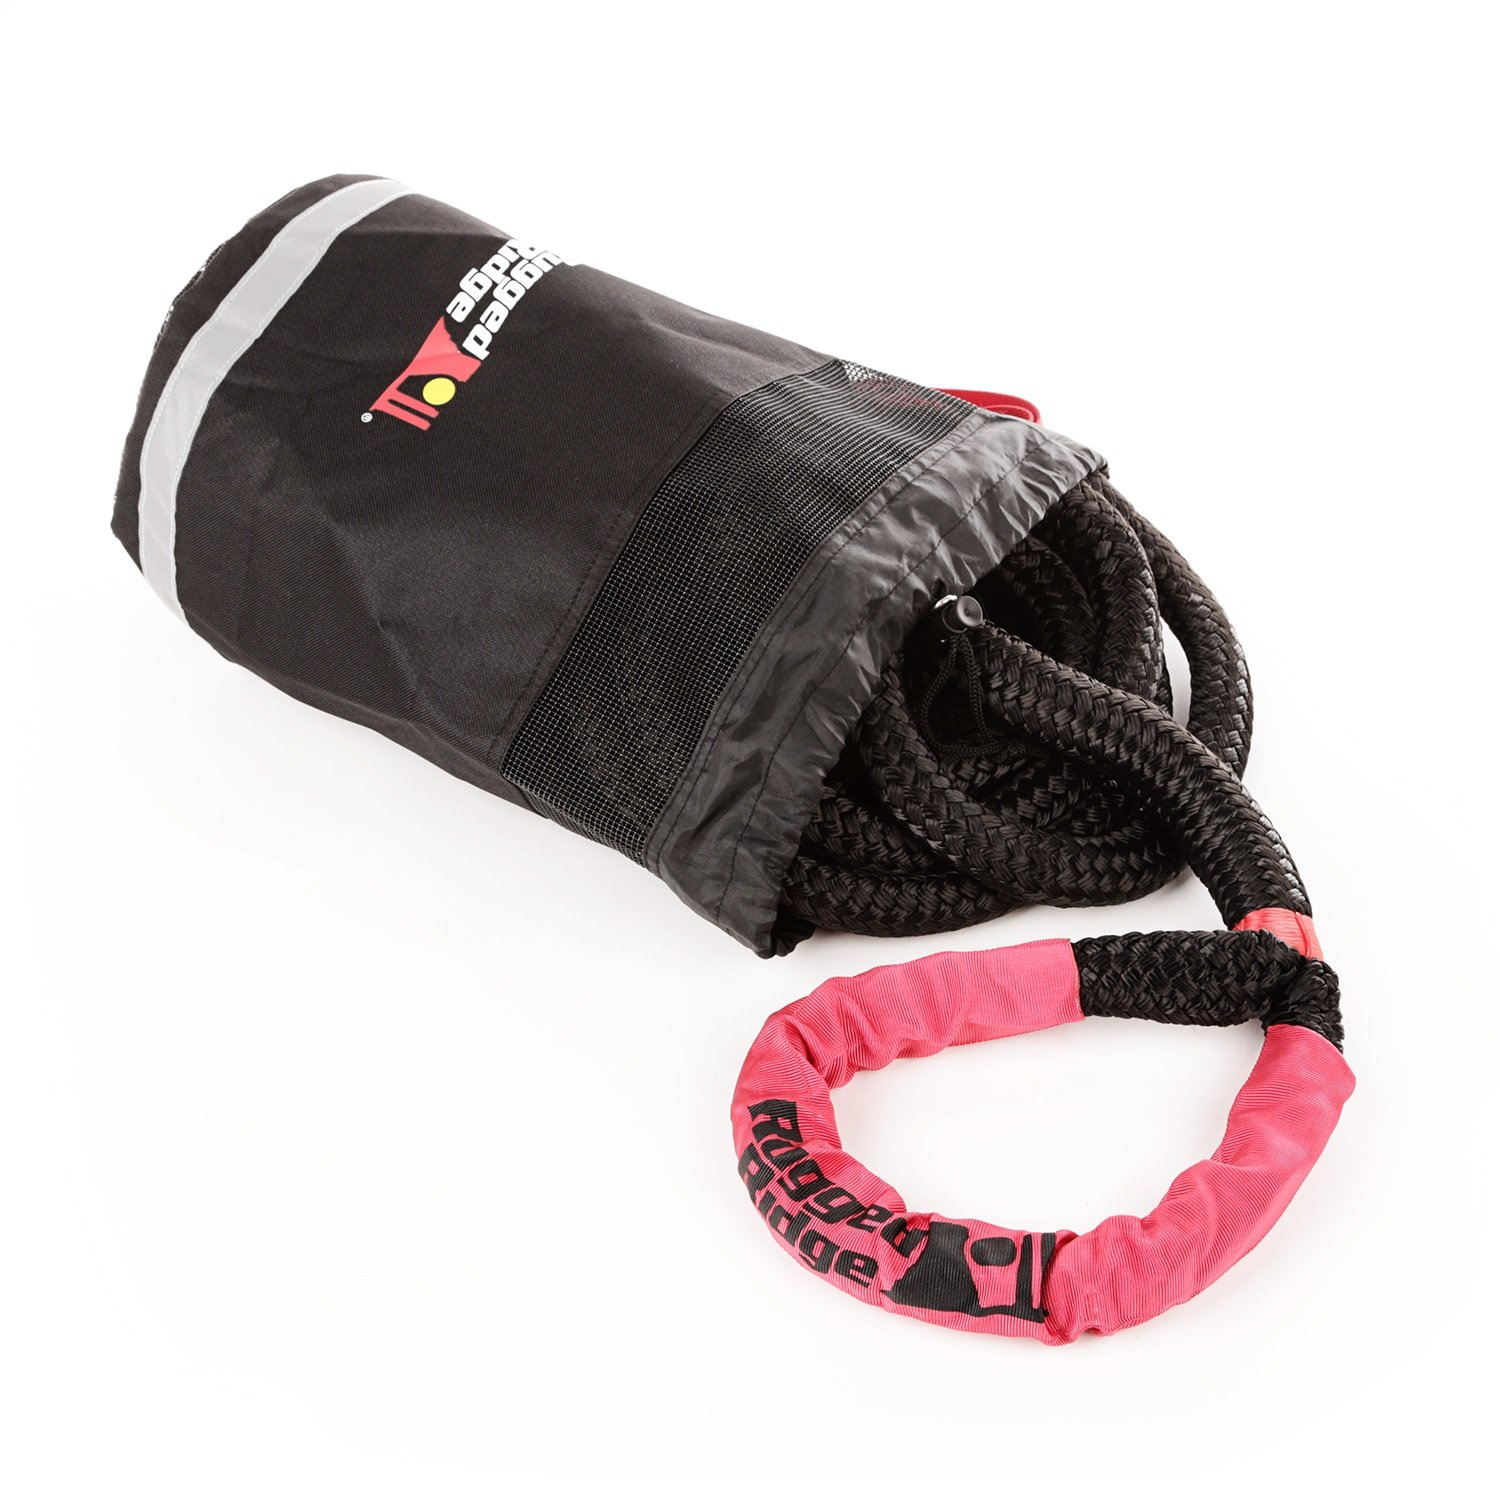 Rugged Ridge 15104.30 Kinetic Recovery Rope with Cinch Storage Bag by Rugged Ridge